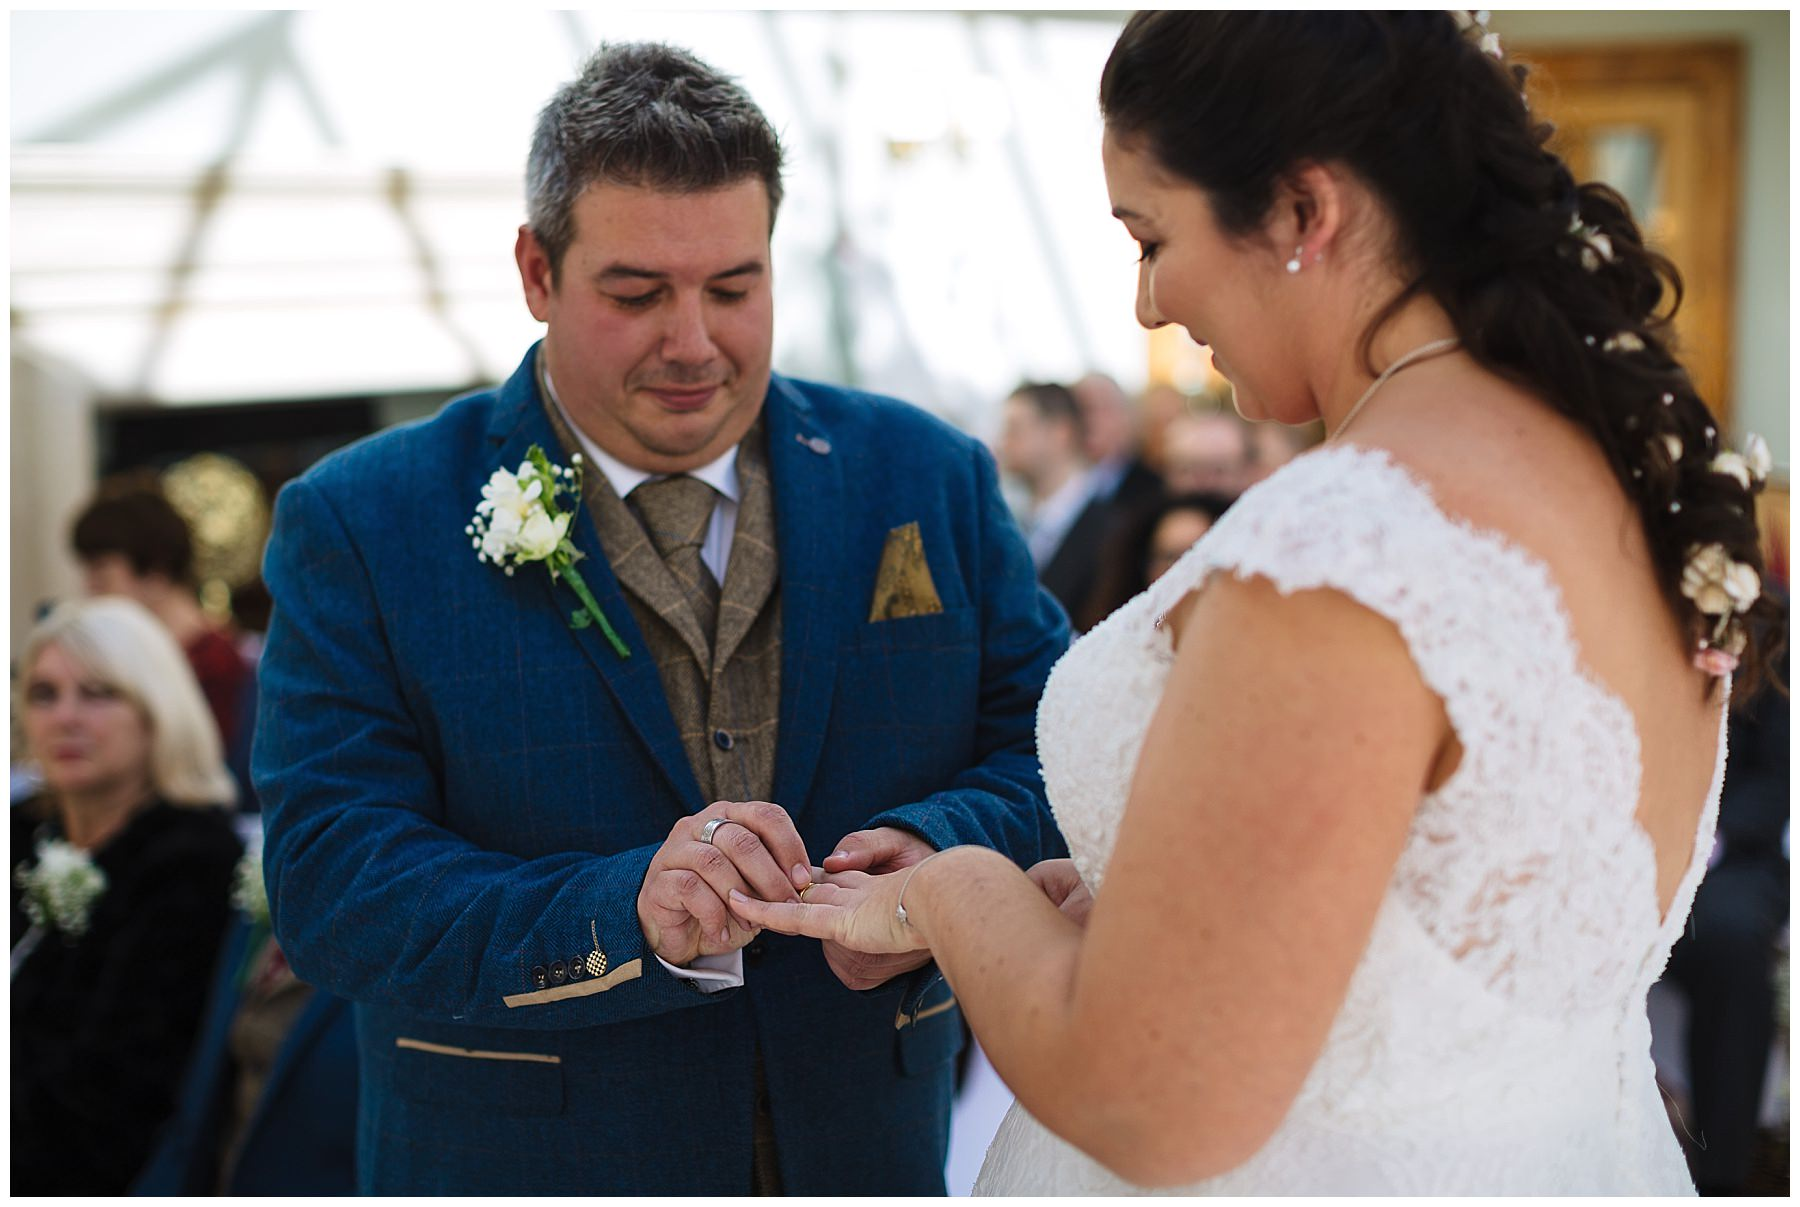 wedding ring exchange during willington hall wedding ceremony